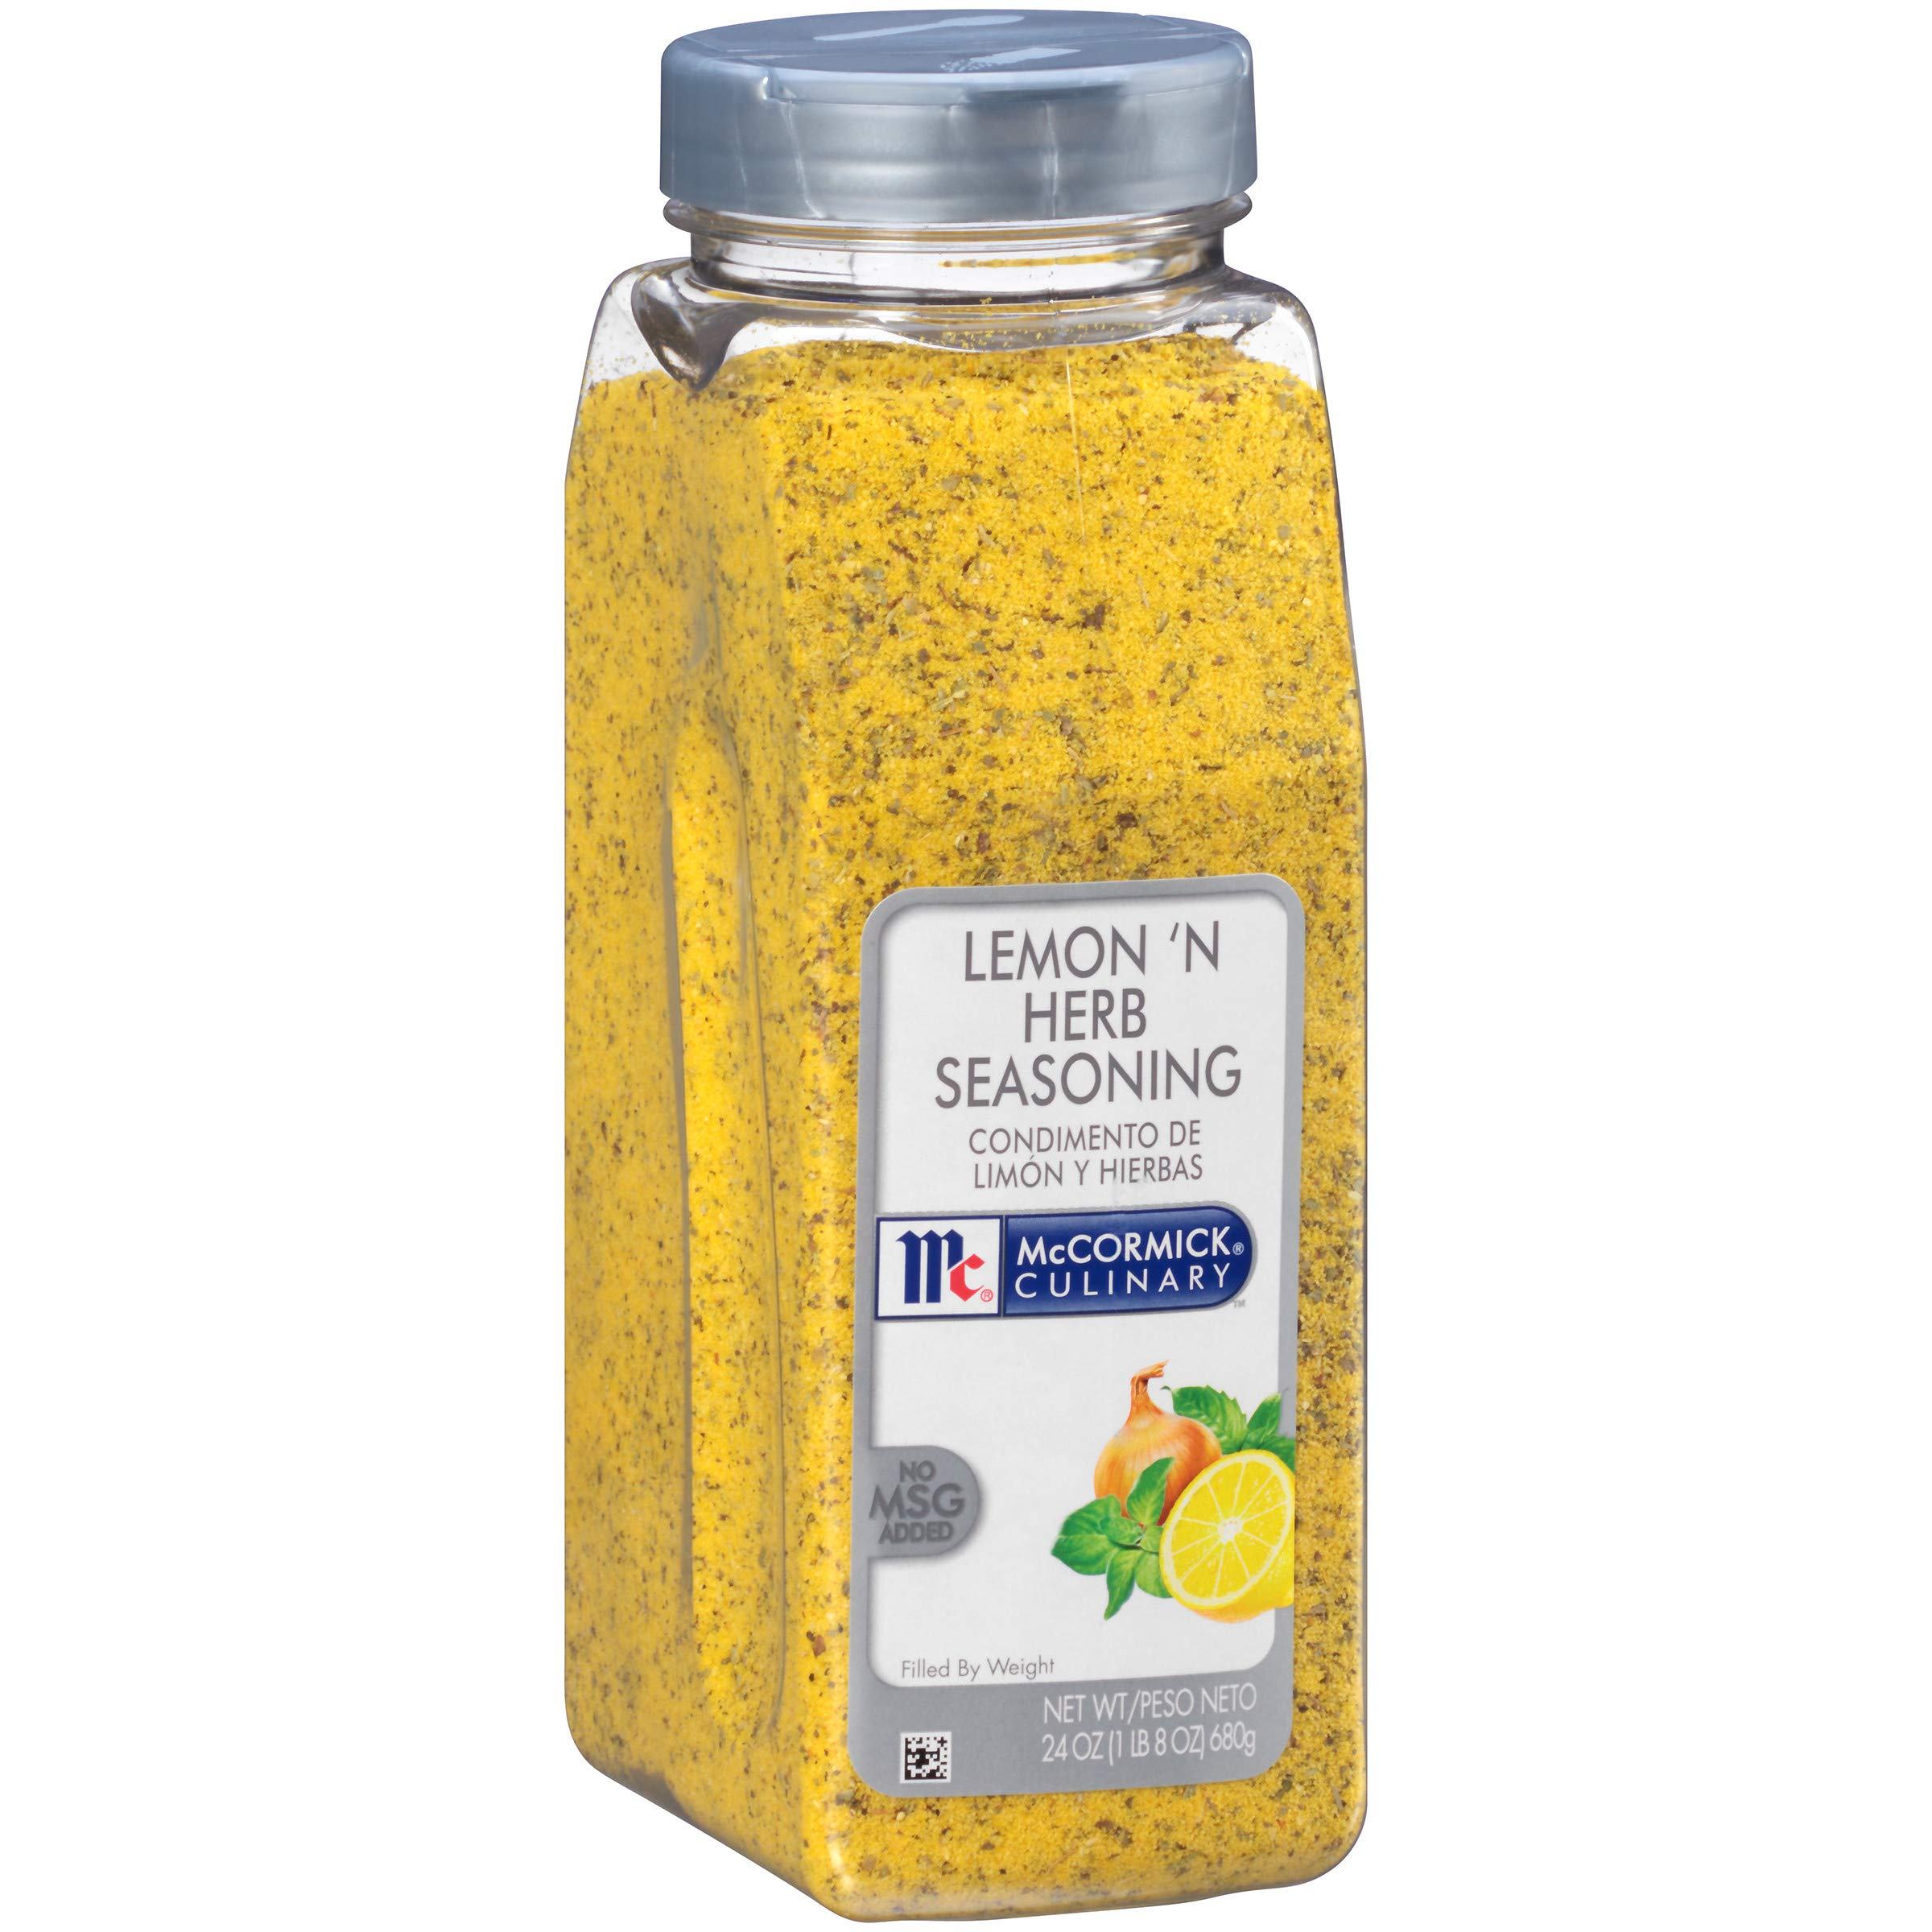 McCormick Culinary Lemon 'N Herb Seasoning, 24 oz